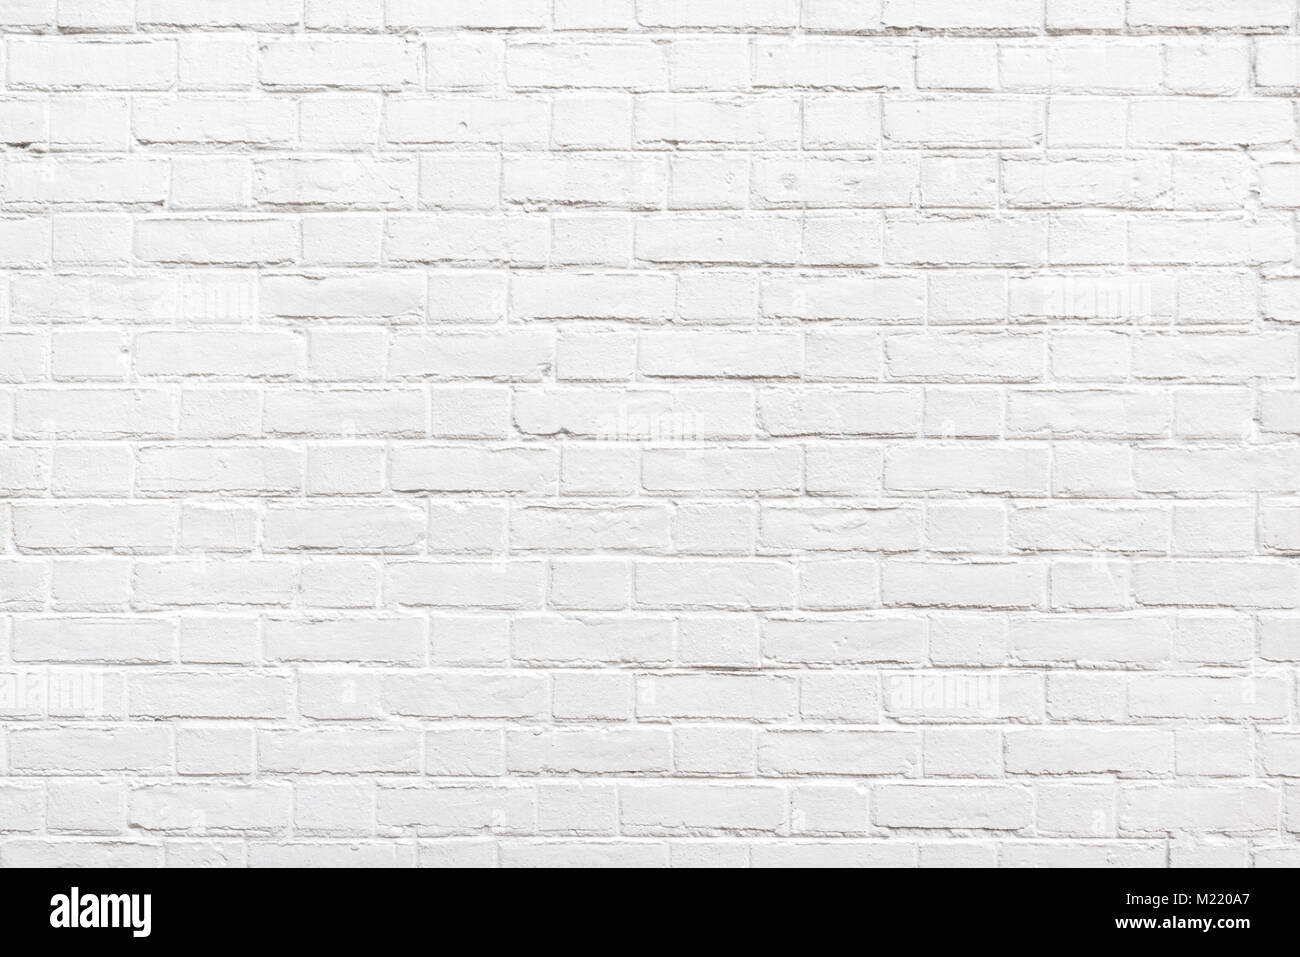 Detail of a white brick wall texture - Stock Image